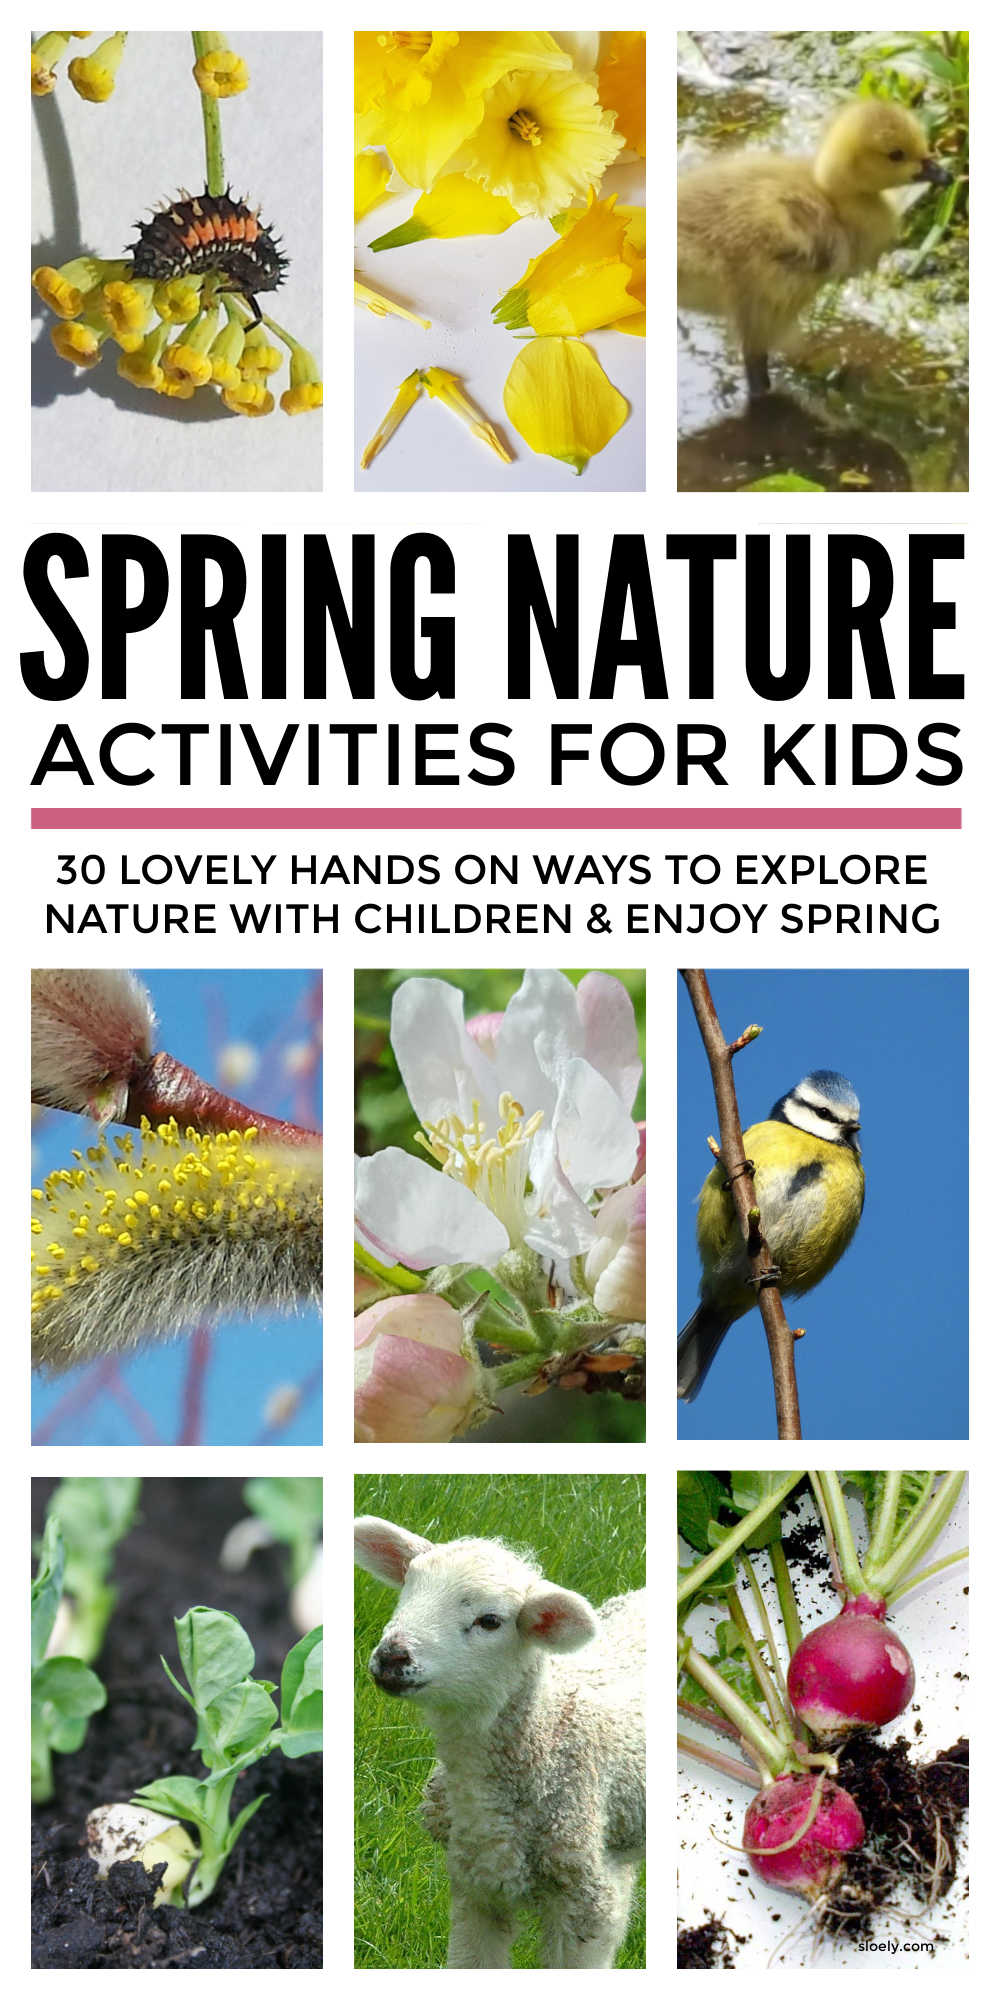 Spring Nature Activities For Kids